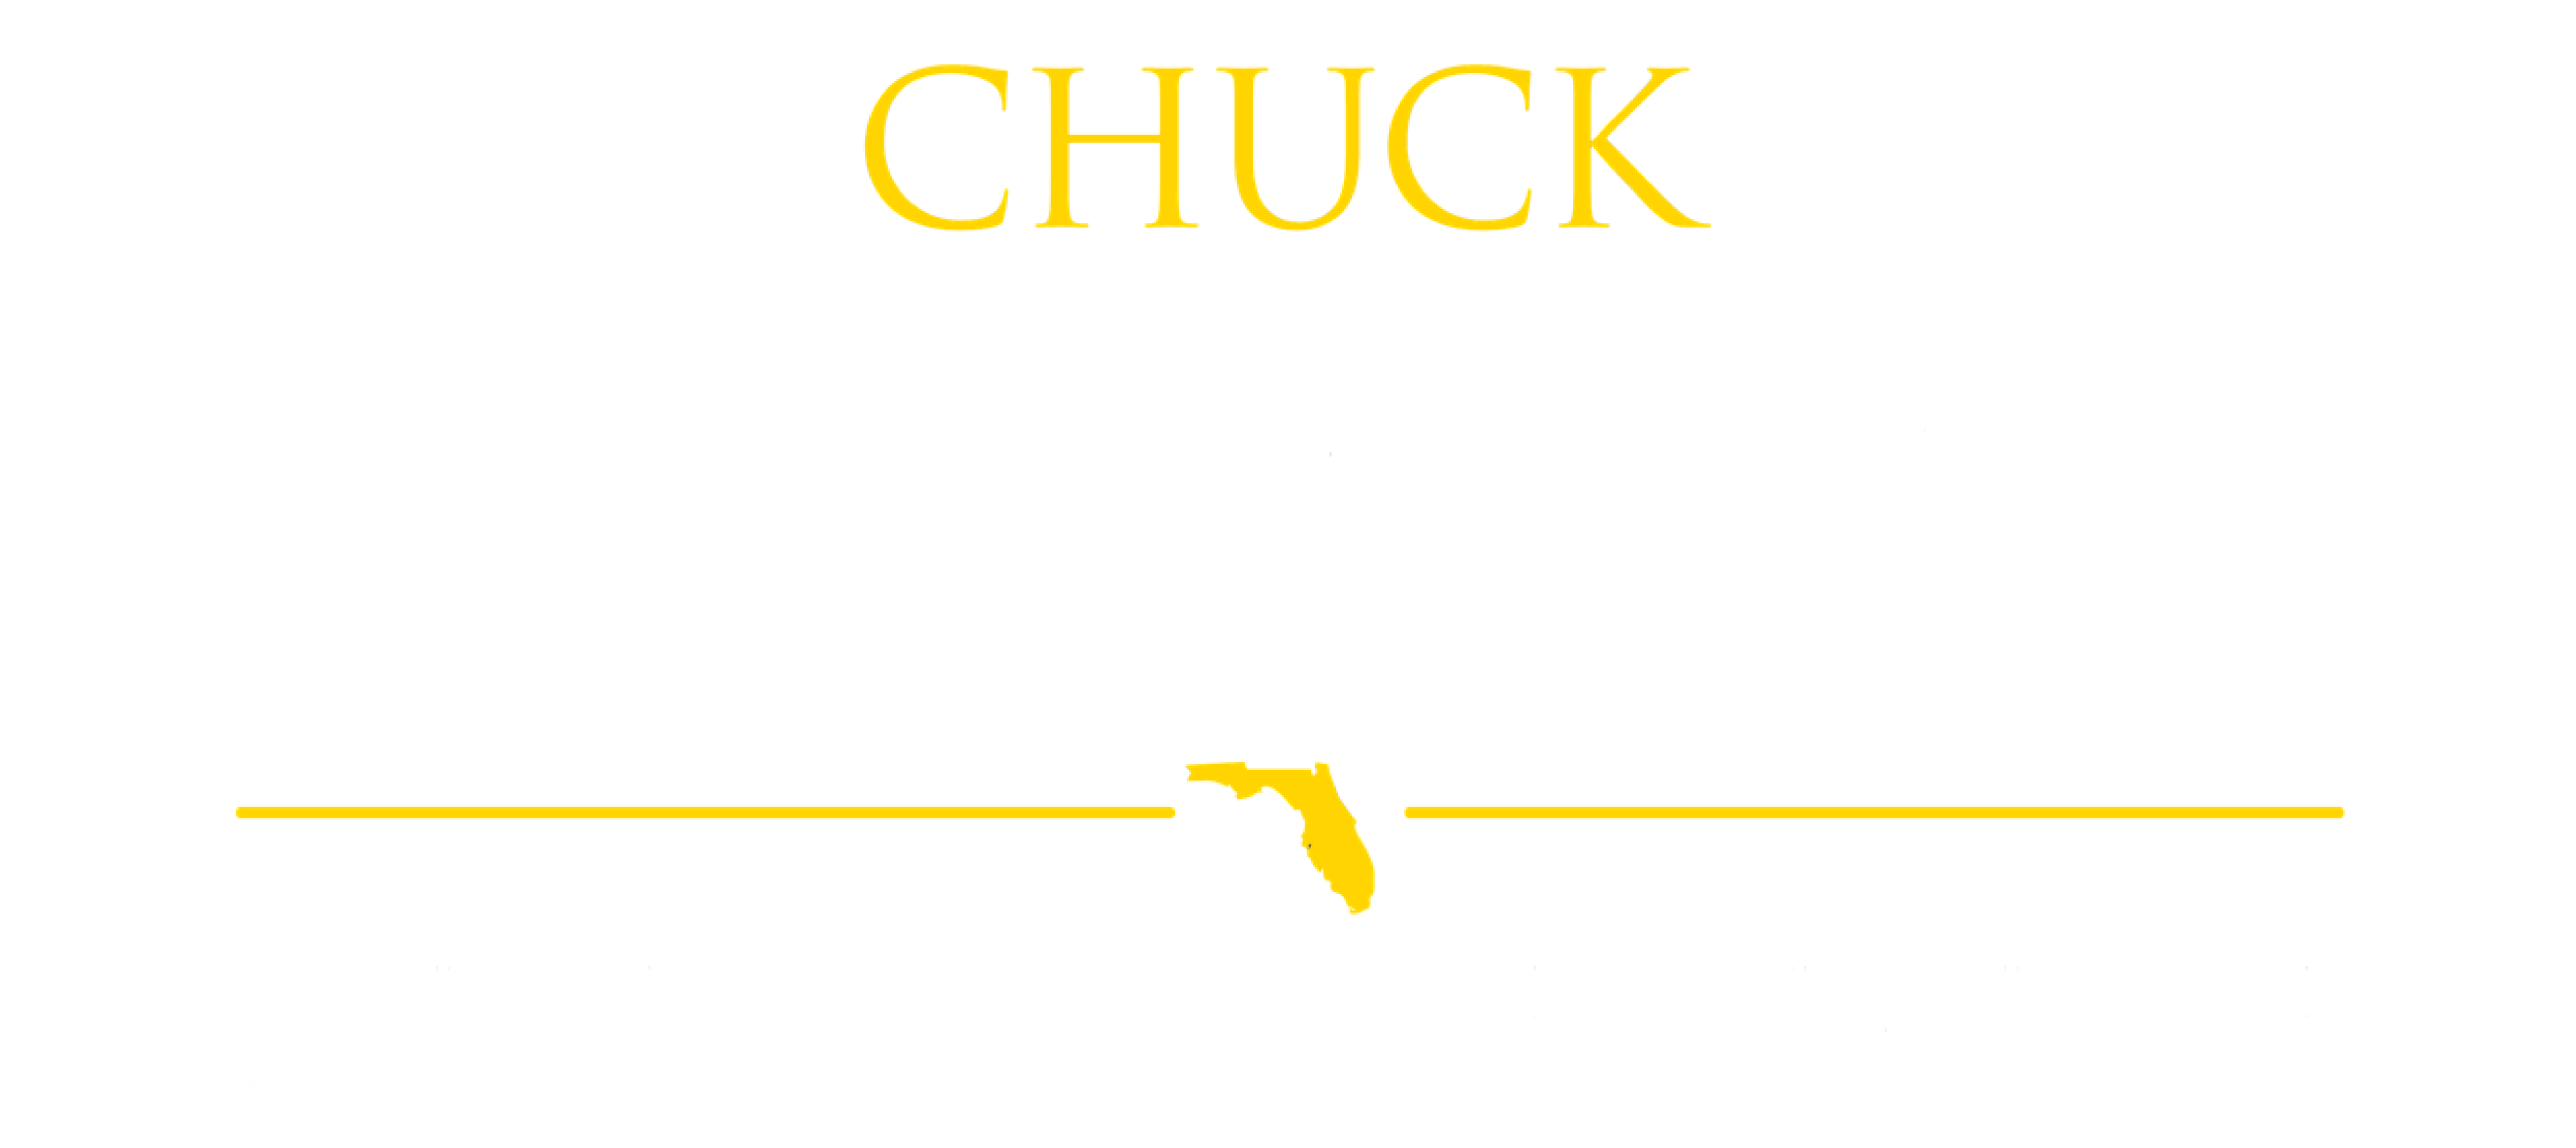 Chuck Clemons for State Representative.